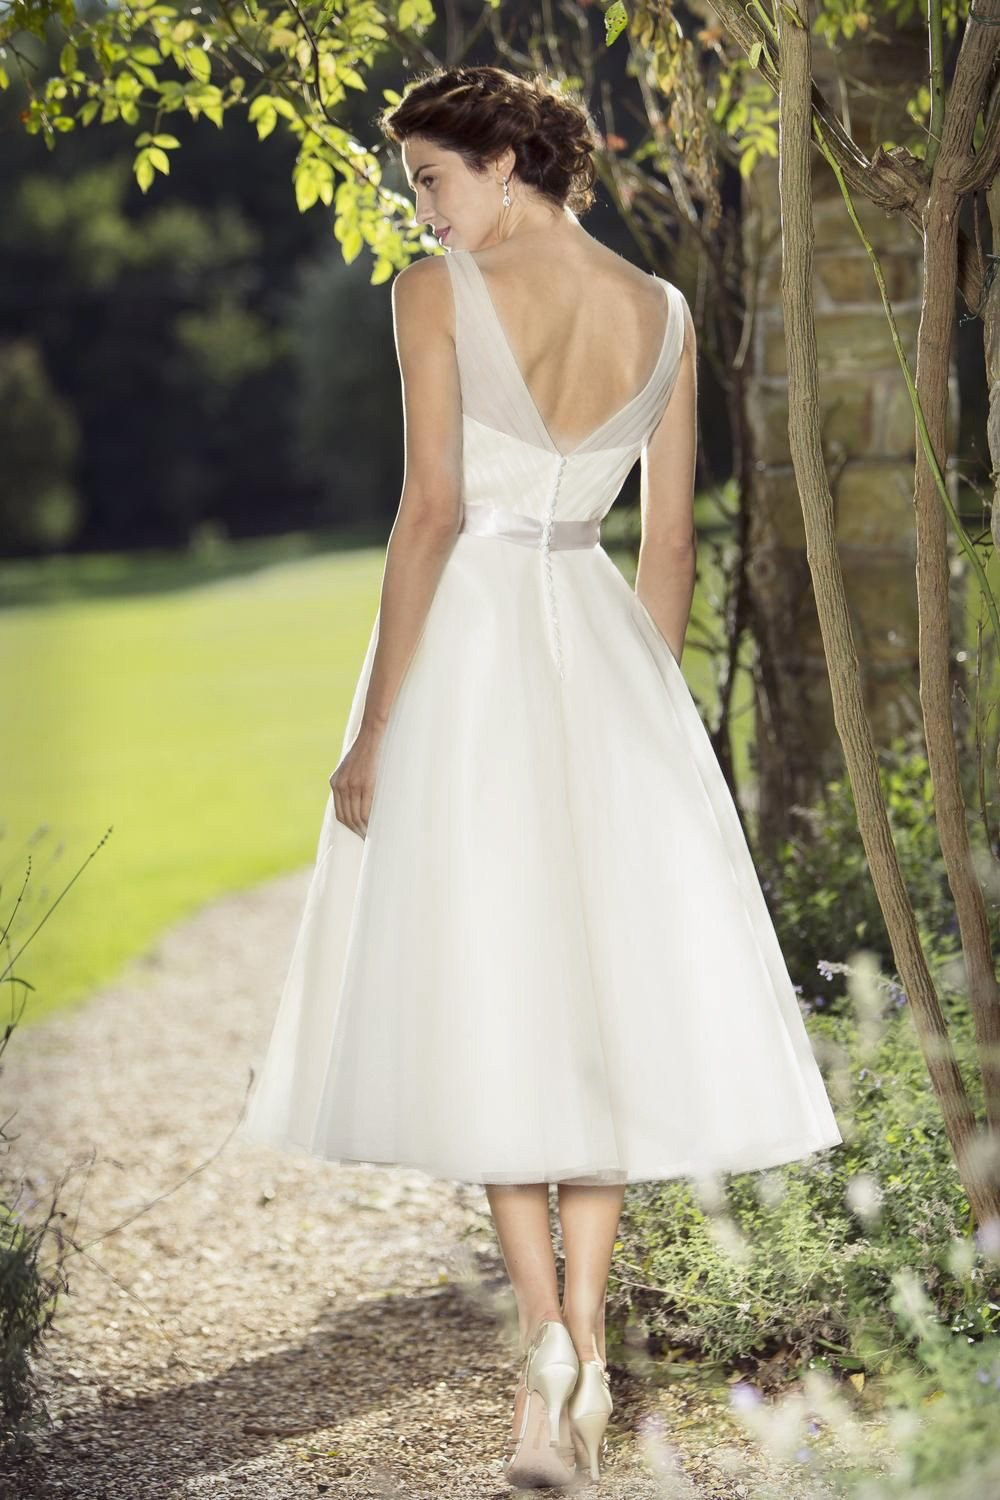 tb-doris-s  Fifties style wedding dress with sweetheart neckline